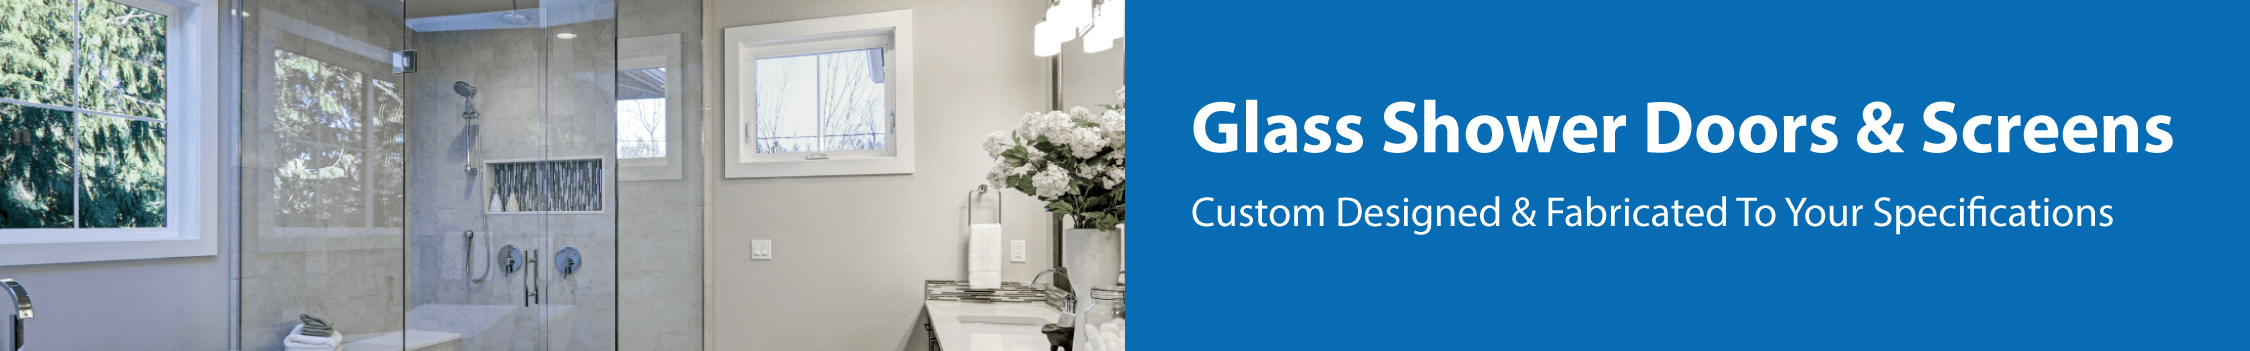 glass shower doors and screens